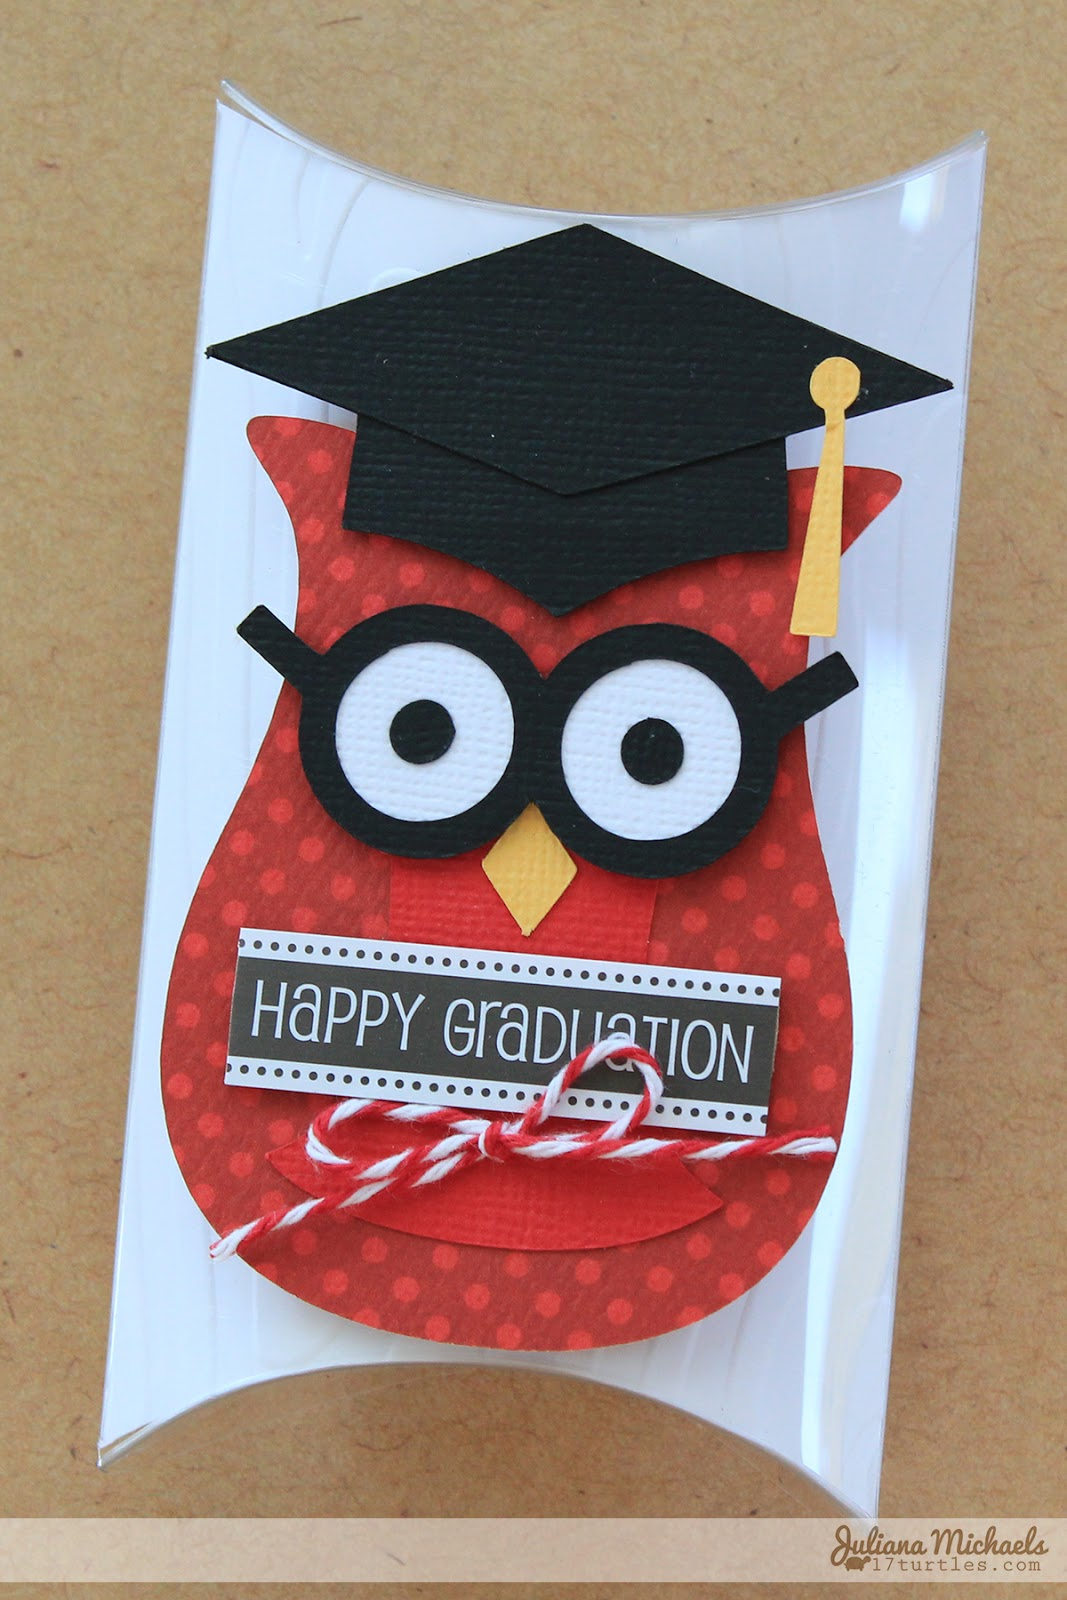 SRM Stickers Blog - DIY Graduation Pillow Boxes by Juliana  #graduation #favors  #DIY #kit #pillow box #twine #stickers